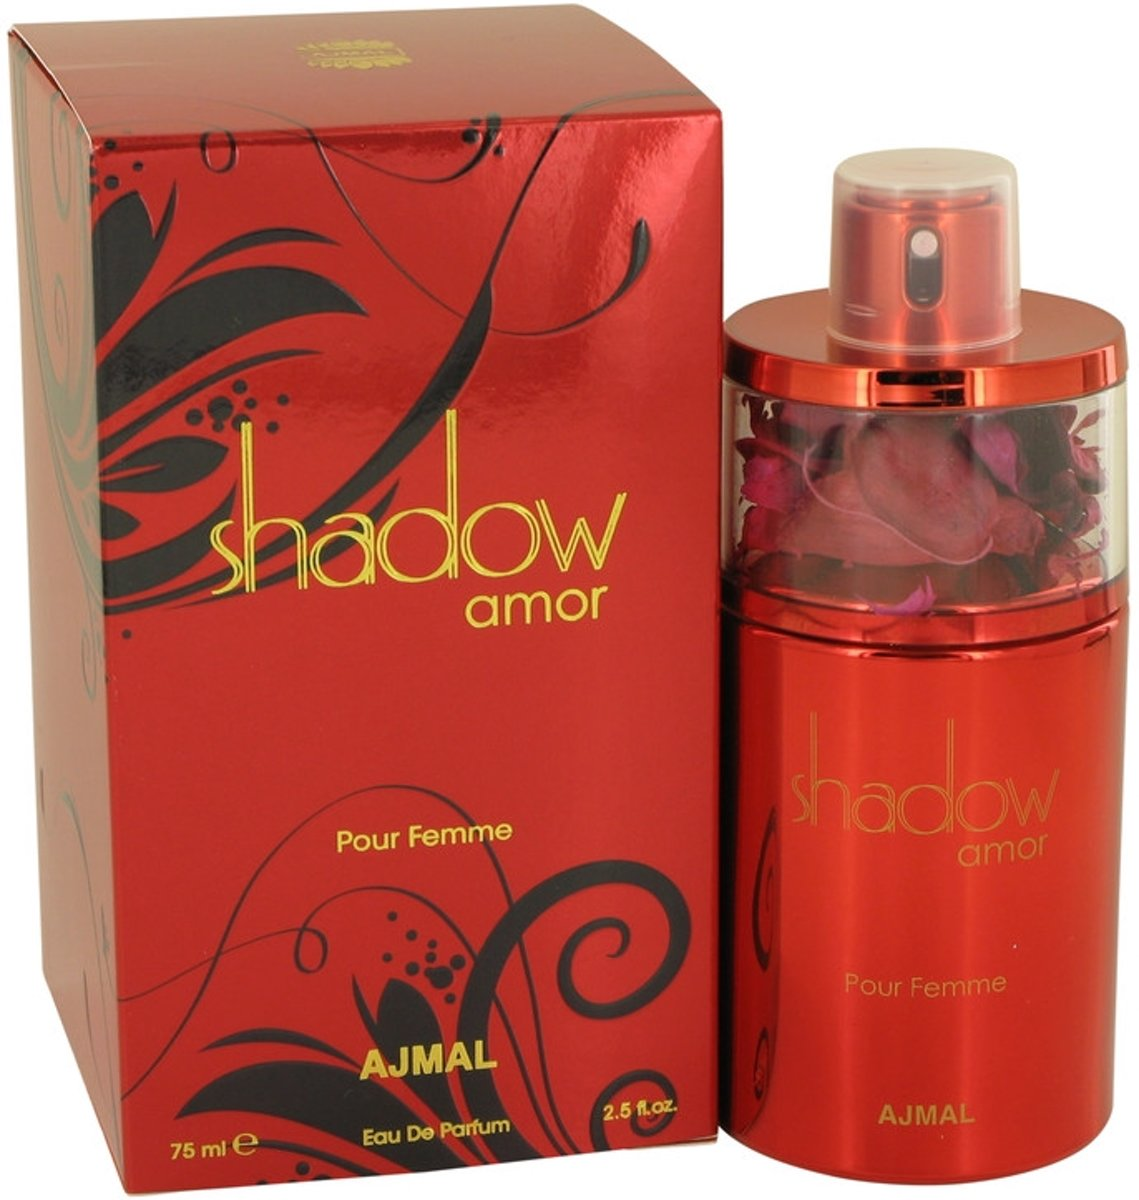 Ajmal Shadow Amor eau de parfum spray 75 ml